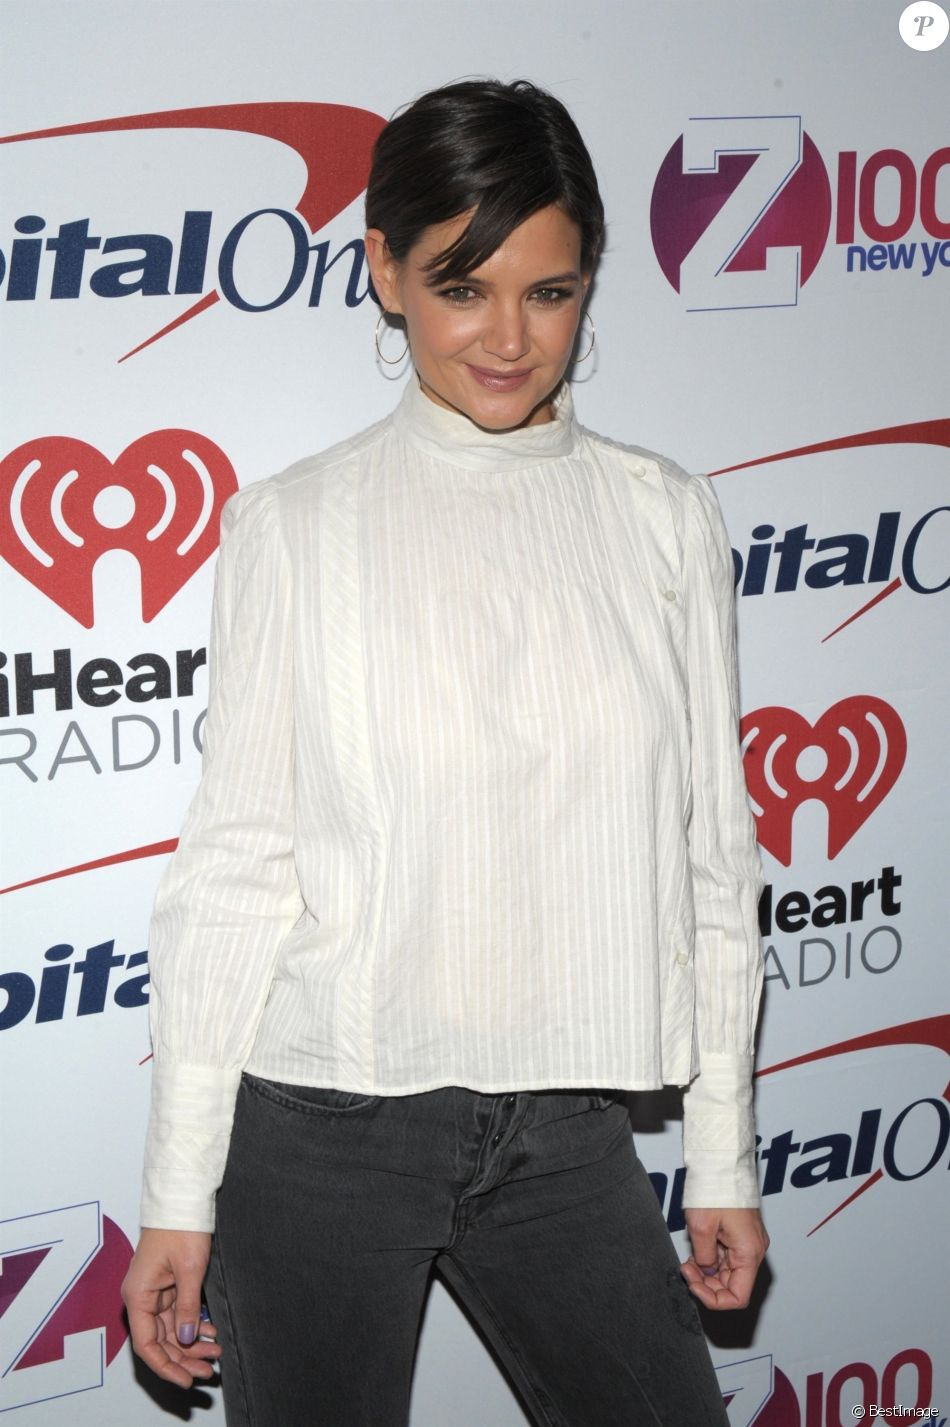 Katie Holmes à la soirée Z100's Jingle Ball sur Madison Square Garden à New York, le 8 décembre 2017